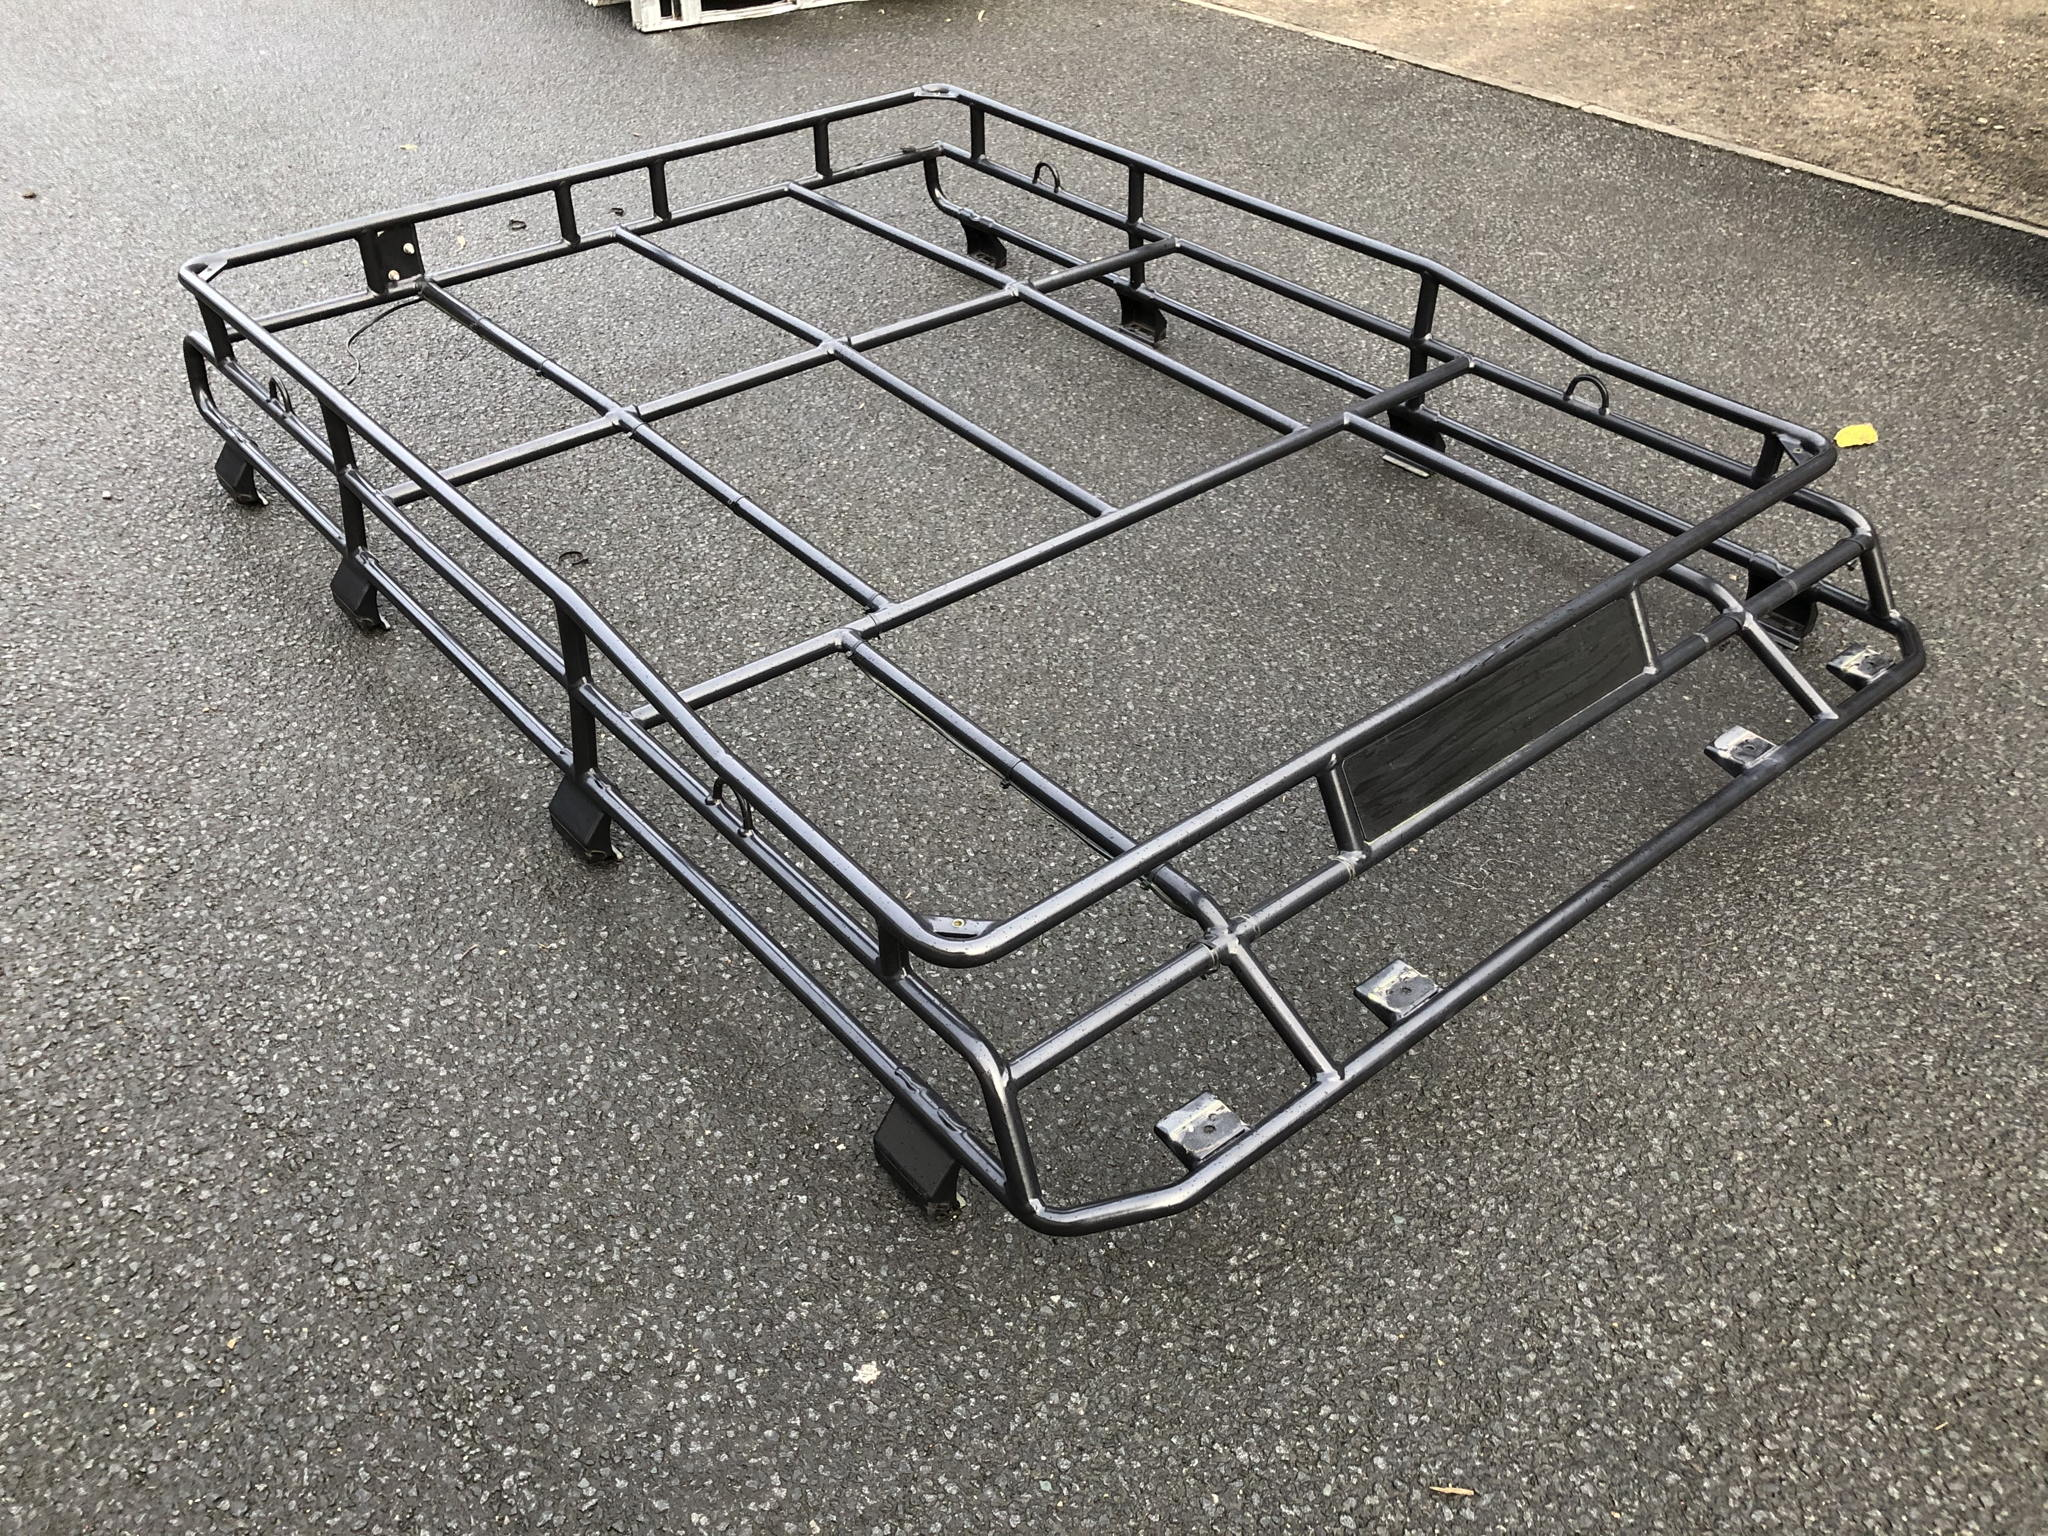 DEFENDER 90 EXPEDITION ROOF RACK's featured image